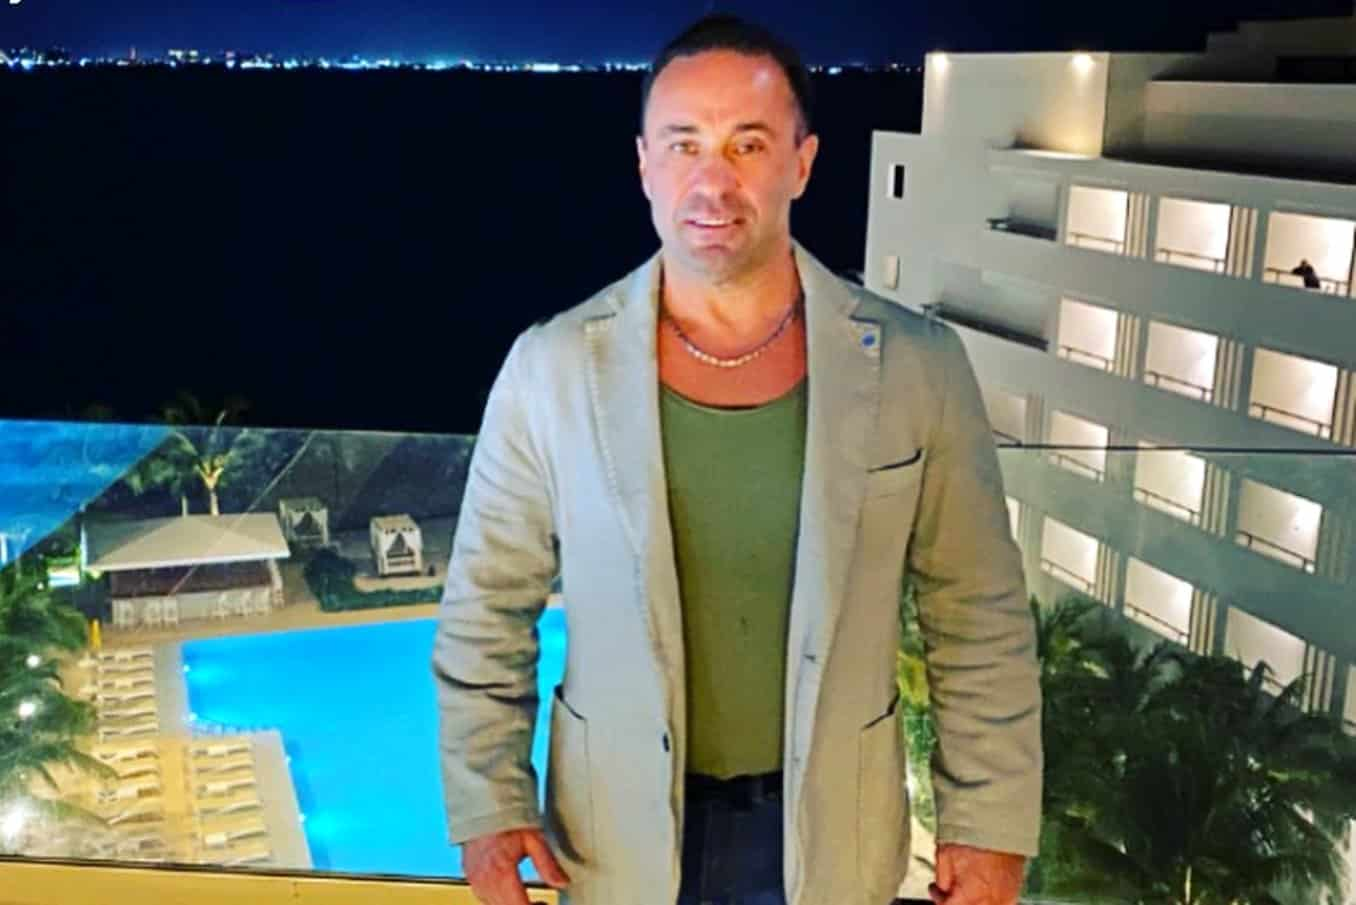 RHONJ Star Joe Giudice's Deportation Appeal is Officially Denied, Are His Chances at Returning to the United States Over for Good?